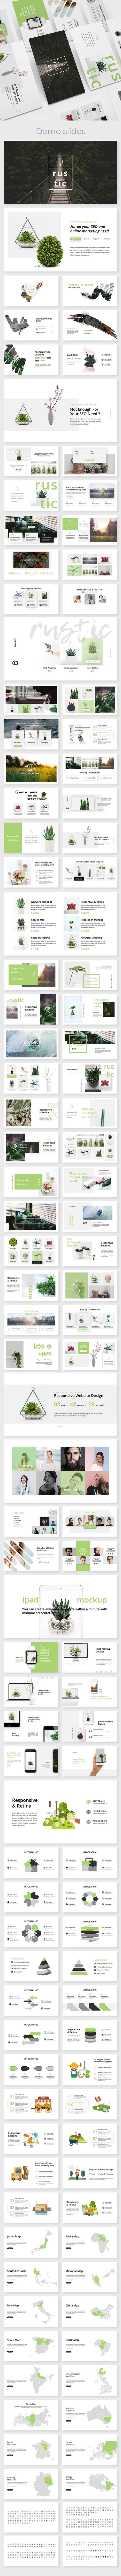 Rustic Minimal Powerpoint Template